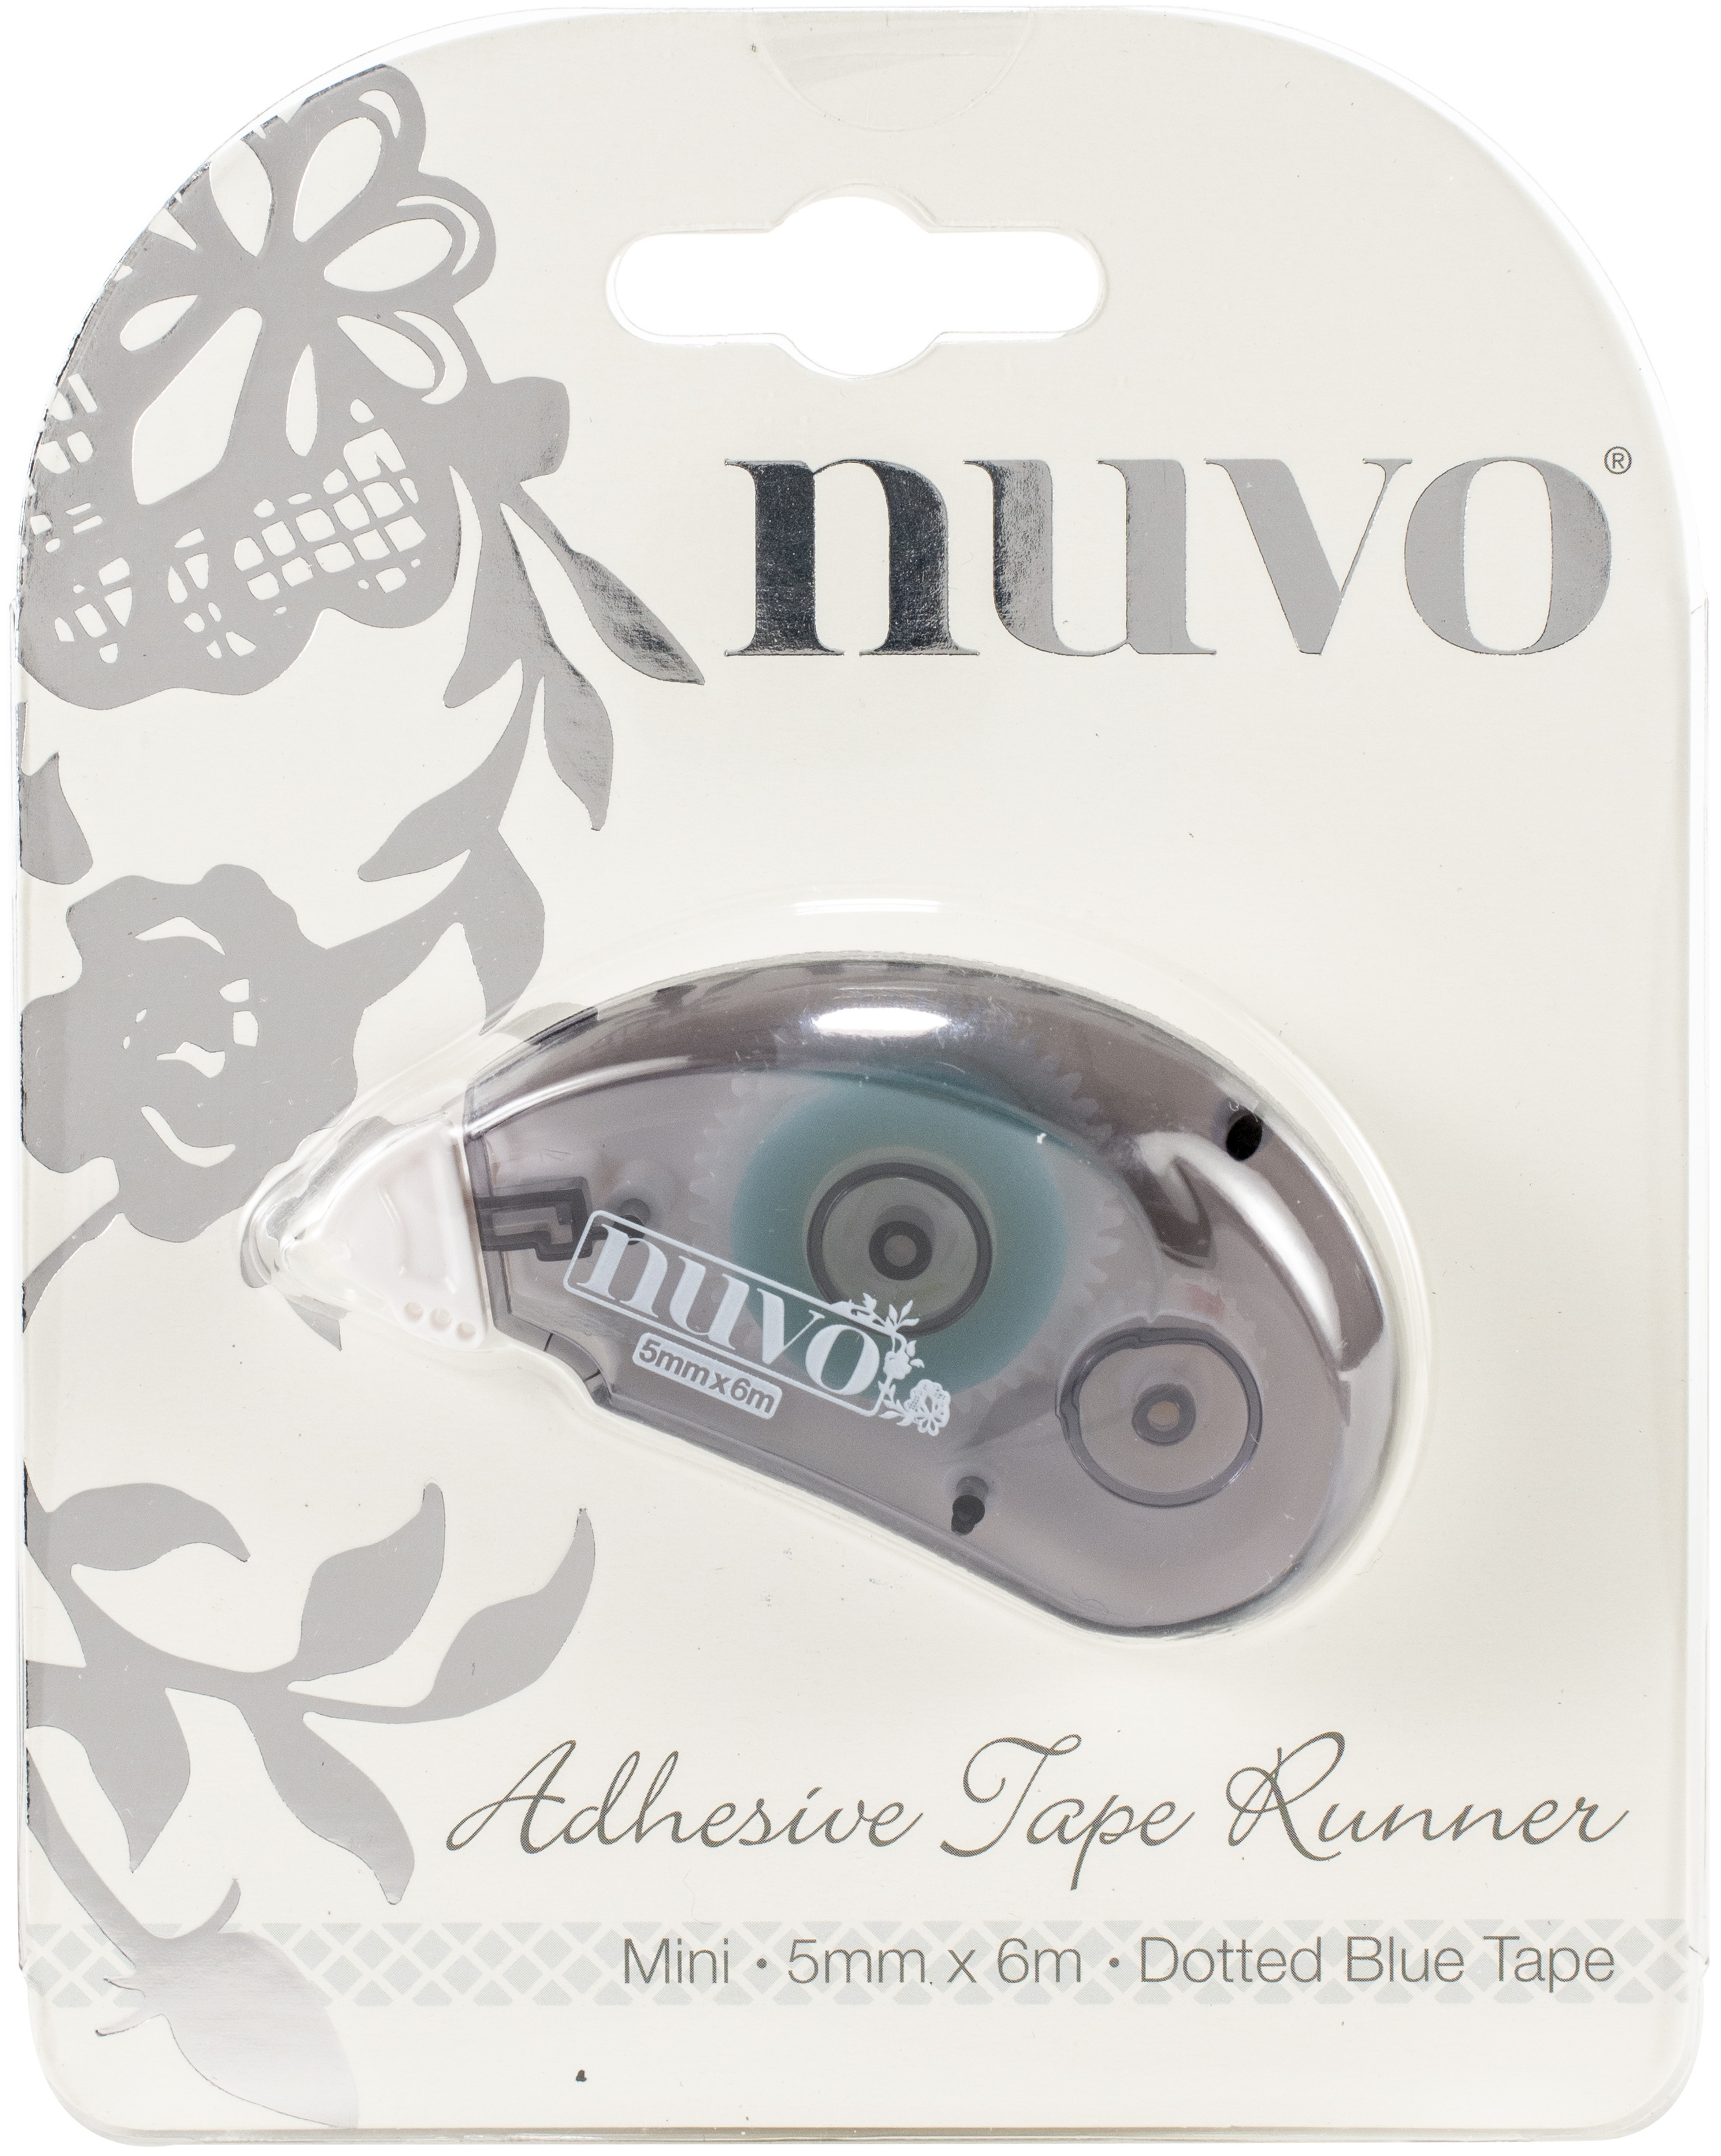 Nuvo Adhesive Tape Runner Mini